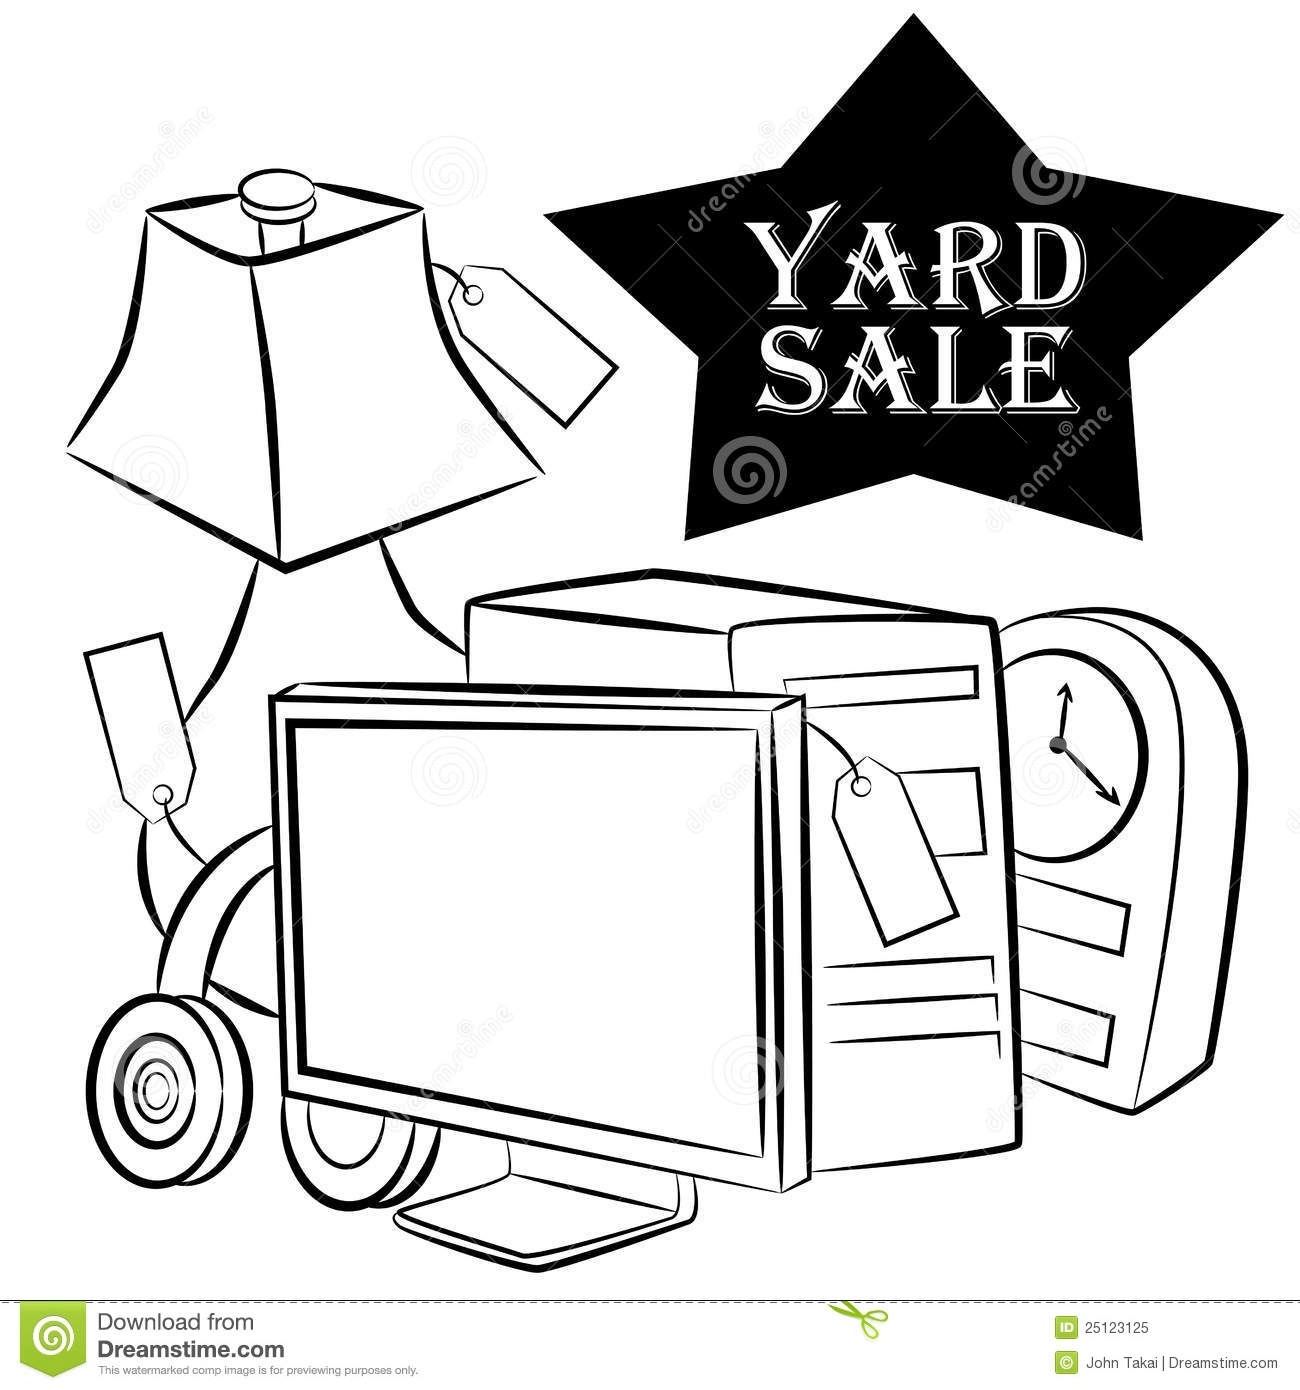 yard sale items royalty free stock photo